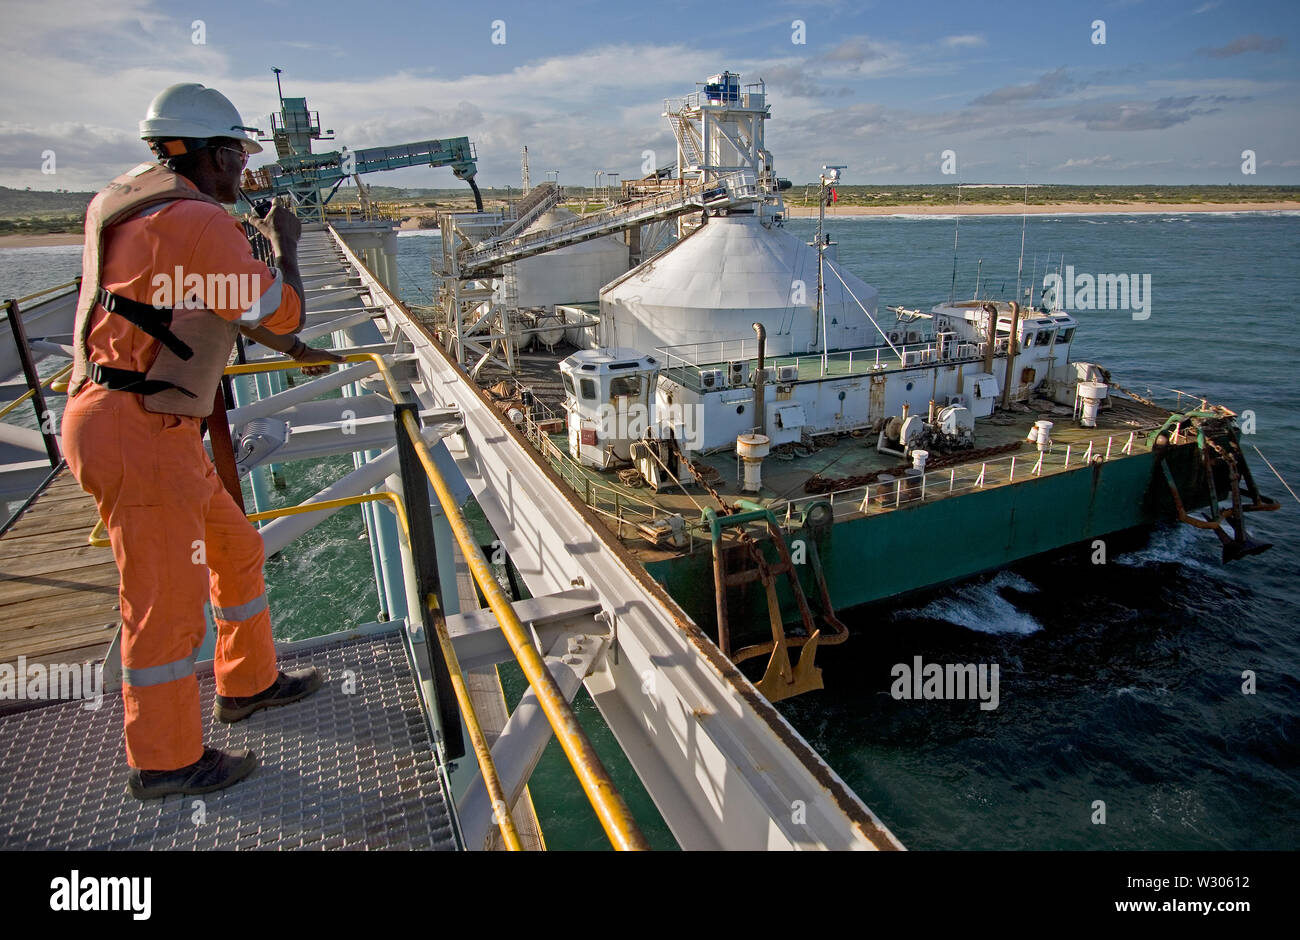 Mining, managing & transporting of titanium mineral sands. Port operations with barge loading & marine jetty work before transhipping product to OGV. Stock Photo